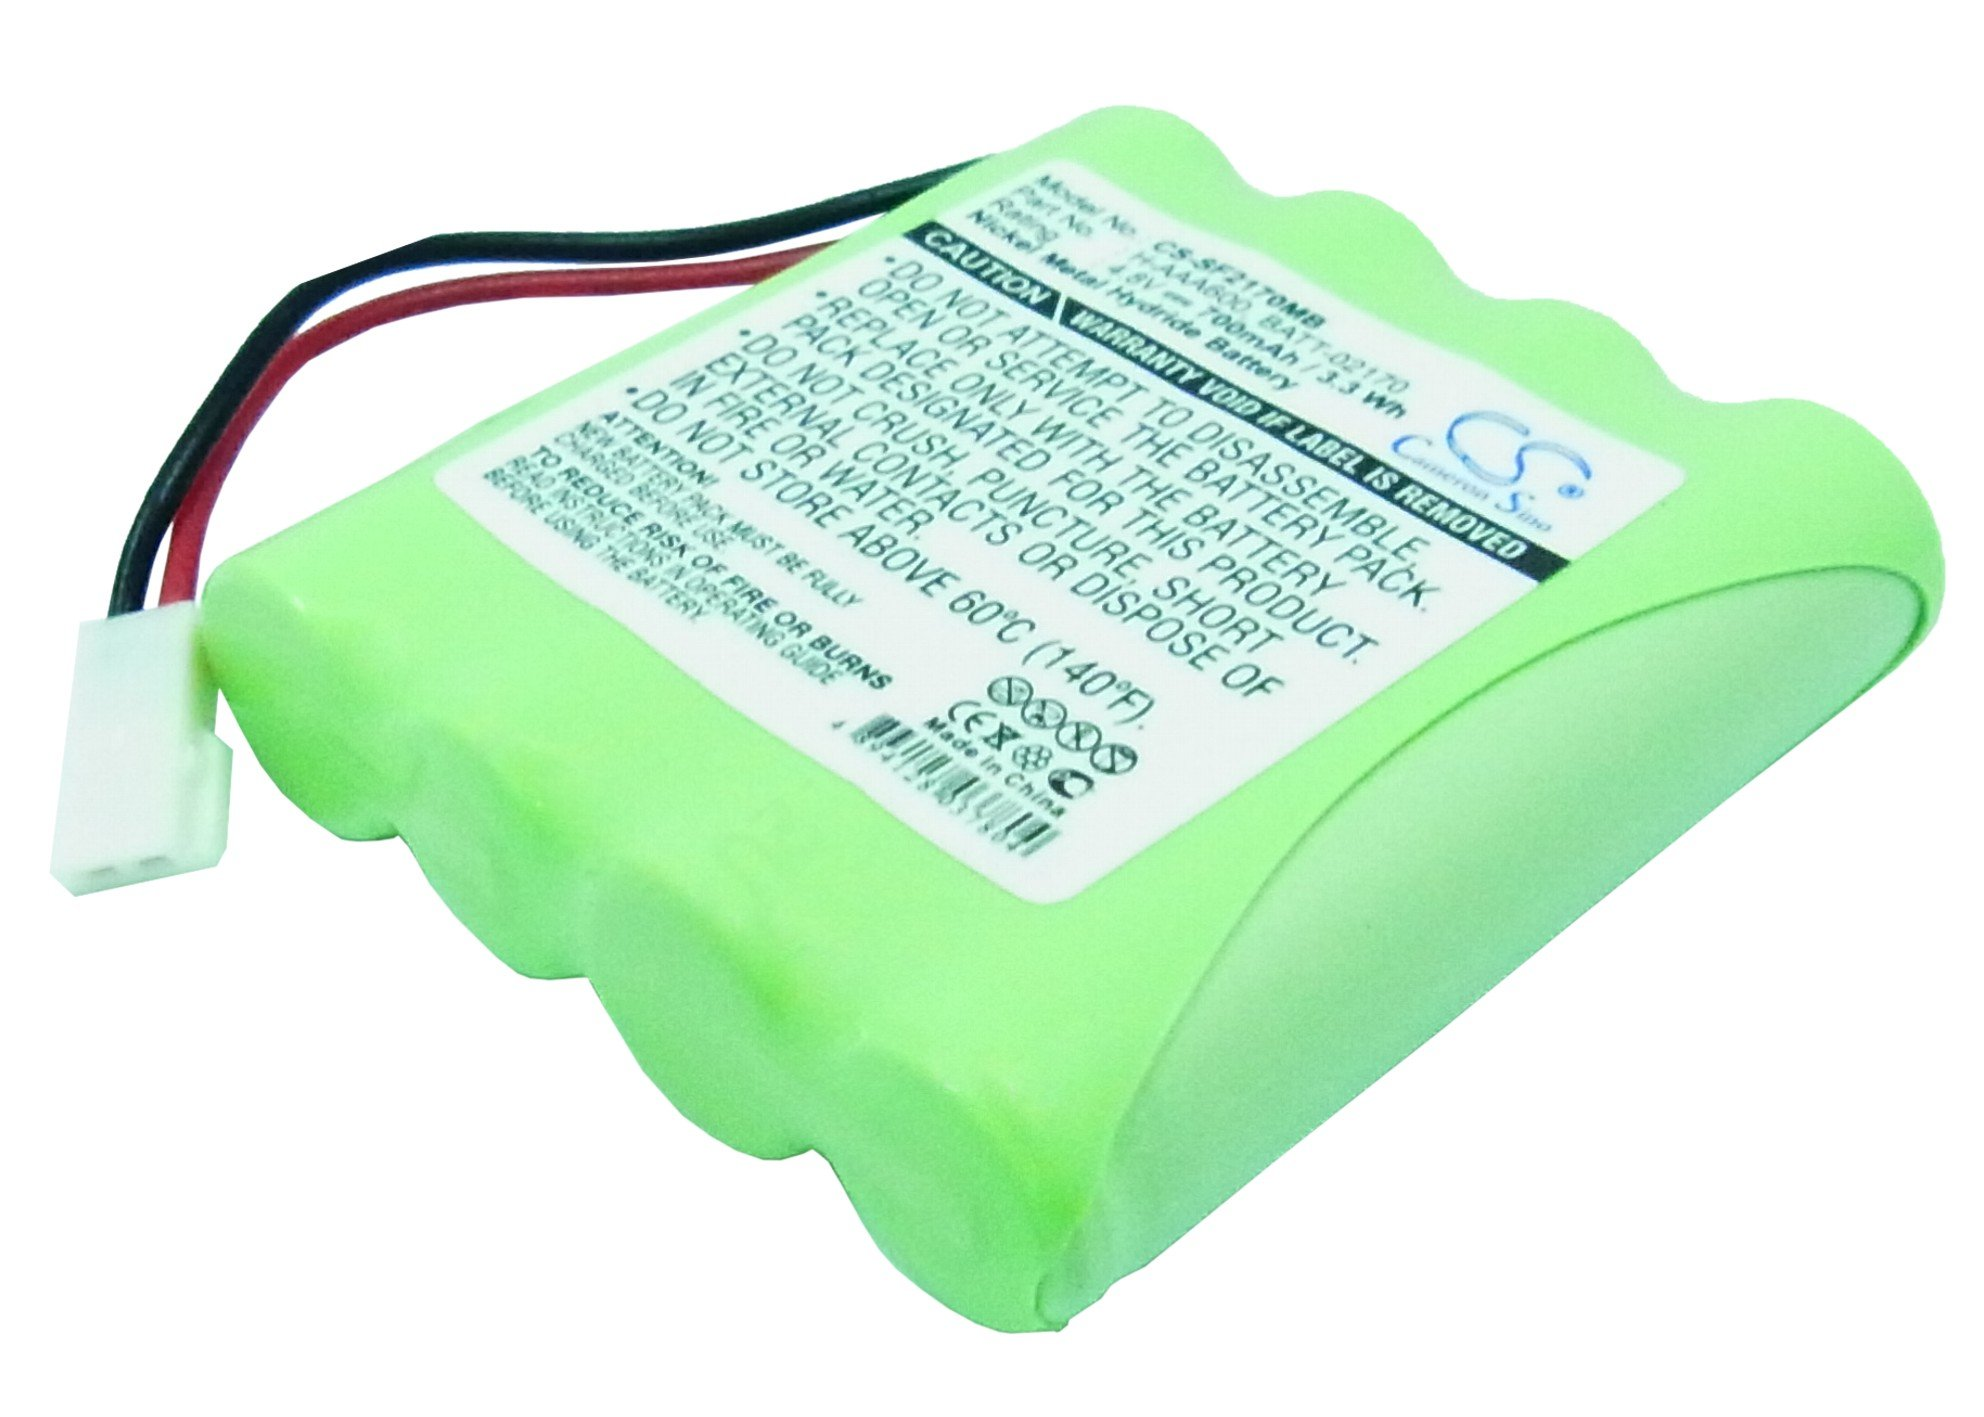 Cameron Sino Replacement Battery for Summer Baby 02170 Video Monitor, 02174 Video Monitor, 02320 Video Monitor, H-AAA600, H-AAA700, Infant 02170 by Cameron Sino